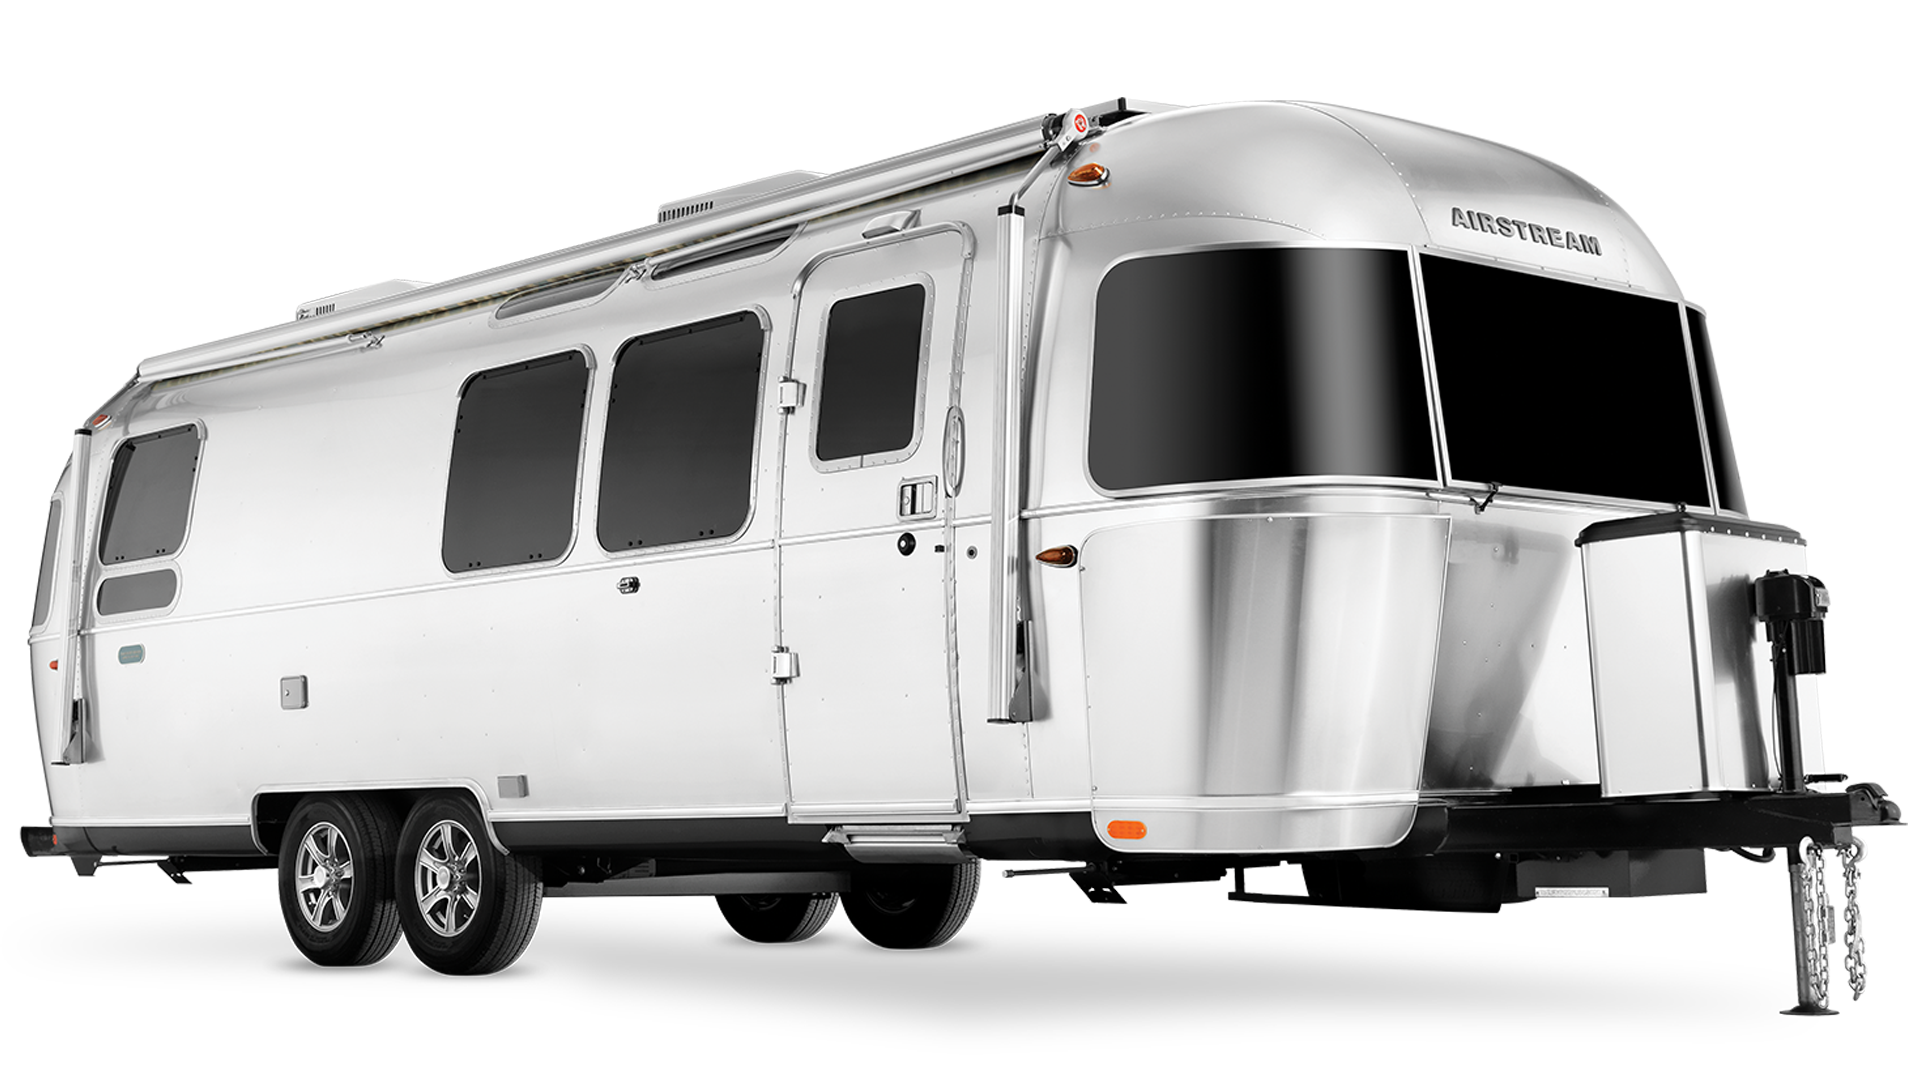 Airstream Pottery Barn Special Edition Travel Trailer exterior image